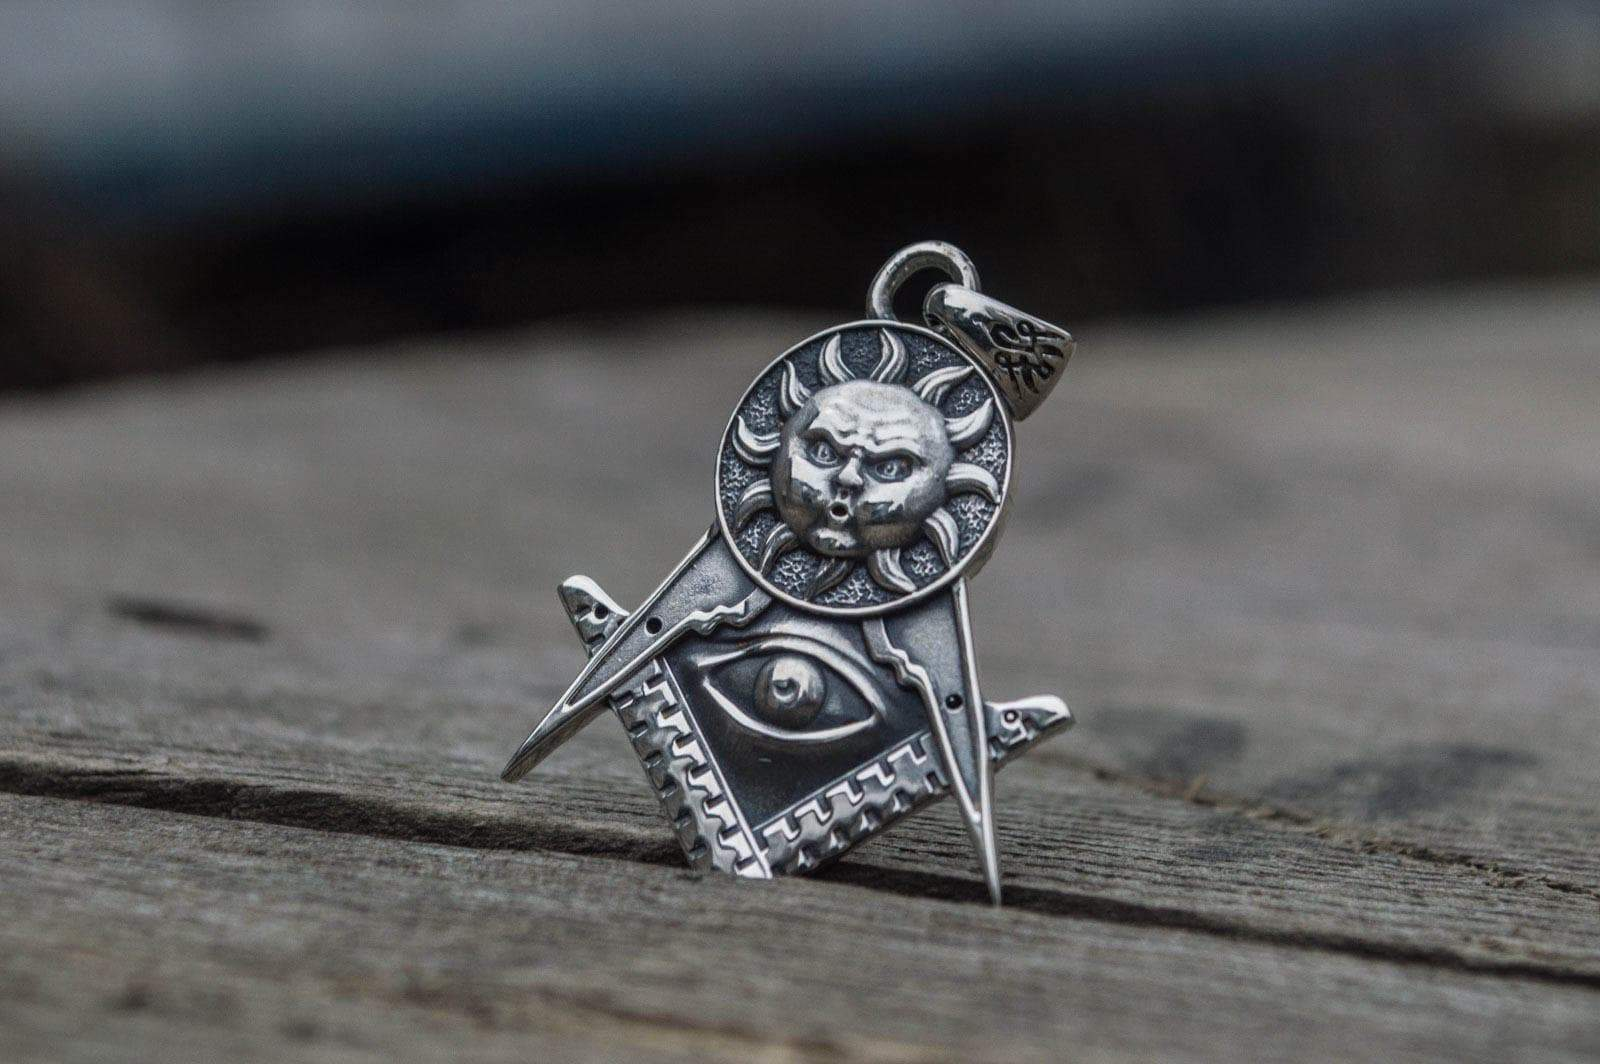 Pendants & Necklaces Masonic Compass All Seeing Eye Sterling Silver Pendant with Sun Ancient Treasures Ancientreasures Viking Odin Thor Mjolnir Celtic Ancient Egypt Norse Norse Mythology